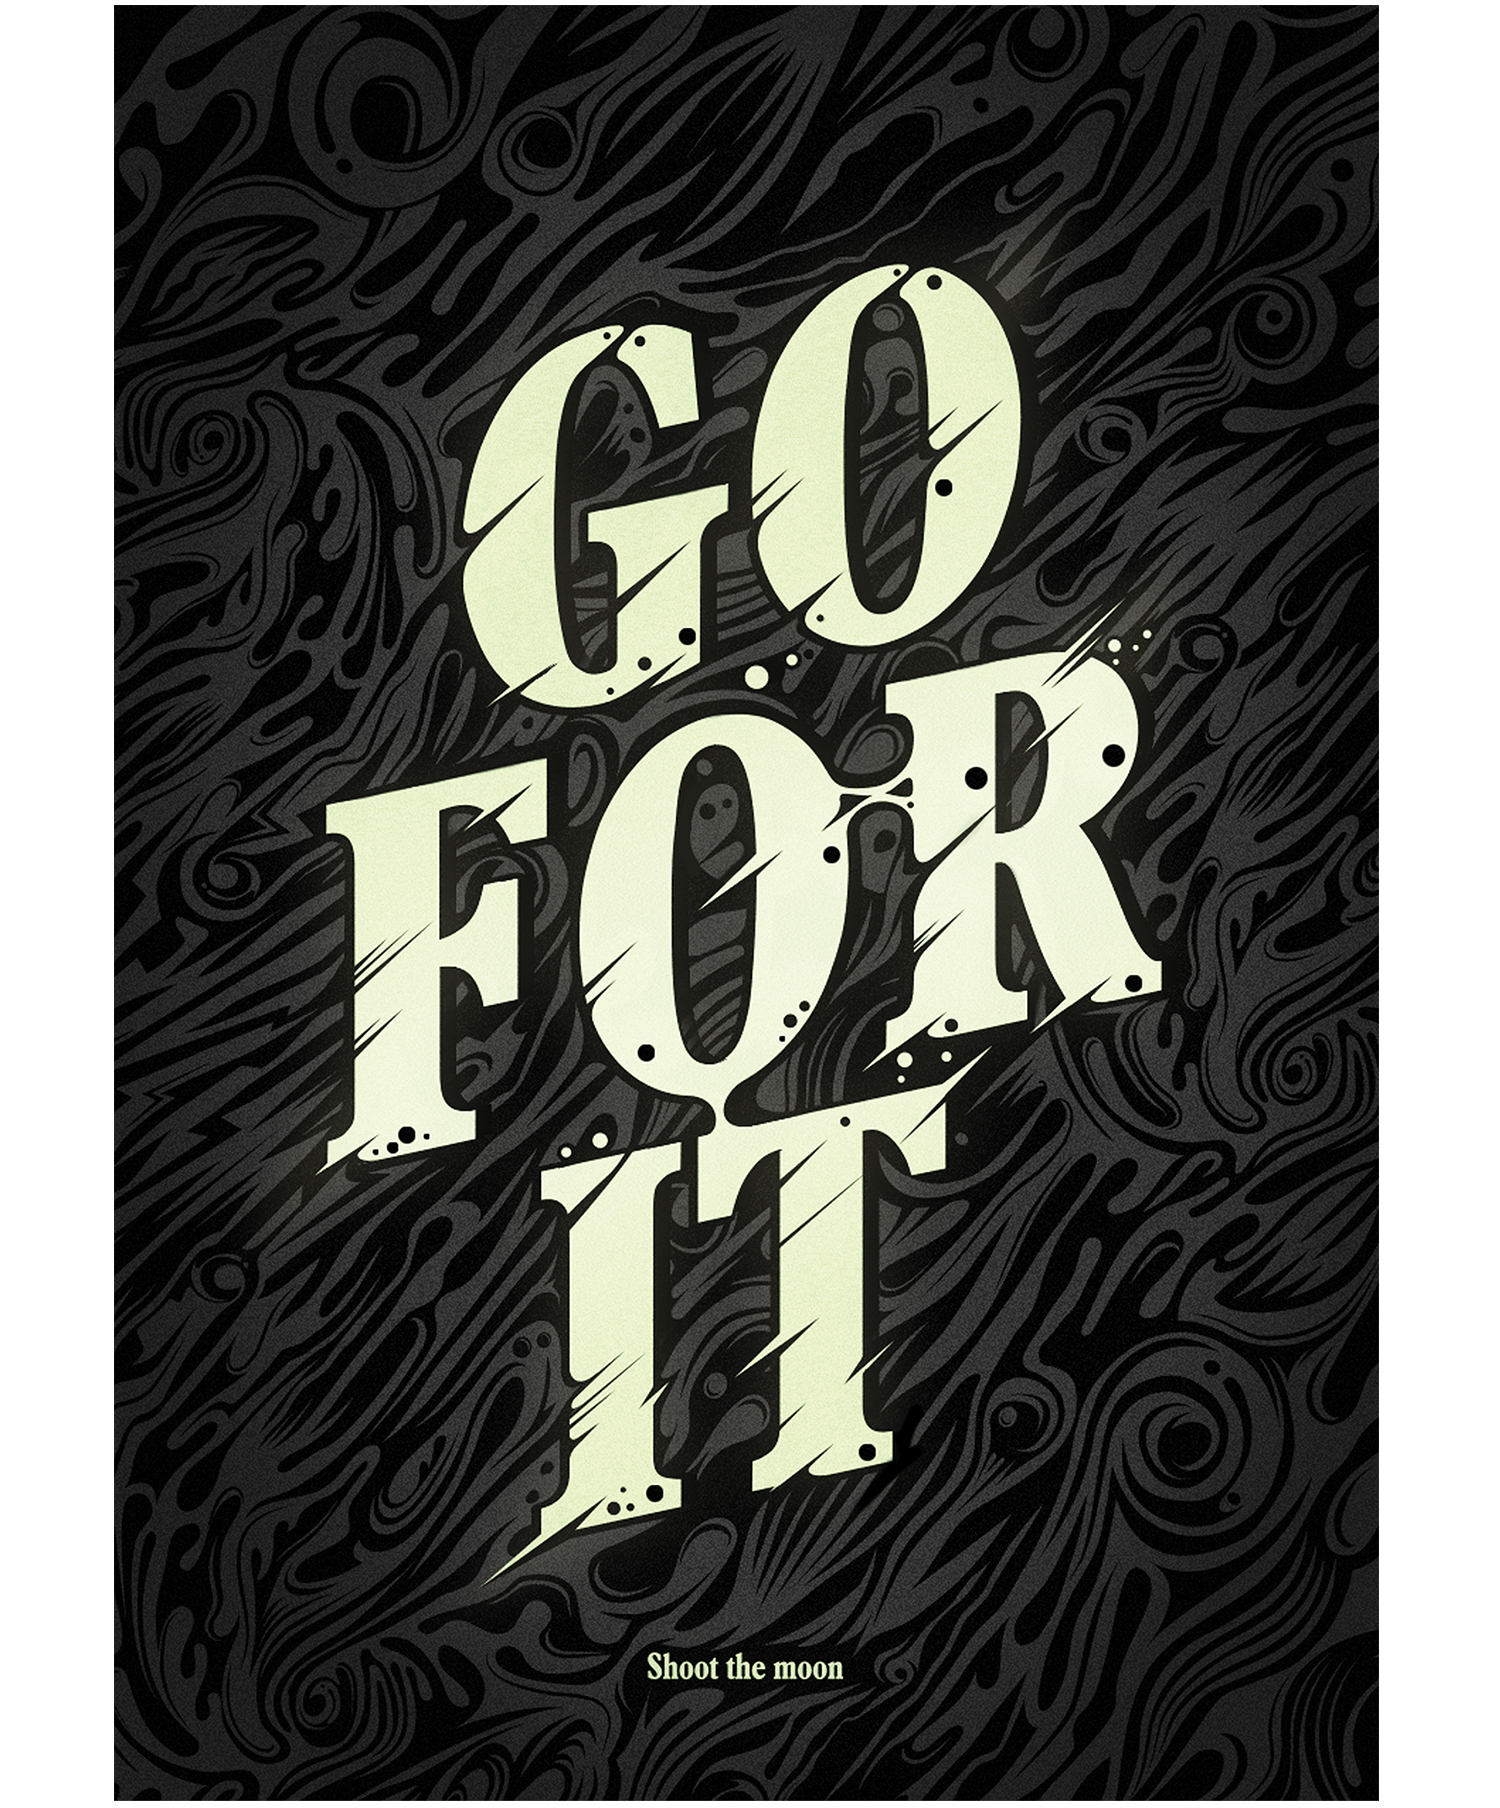 GO FOR IT  Persona work to auto motivate myself when I was moving to London.